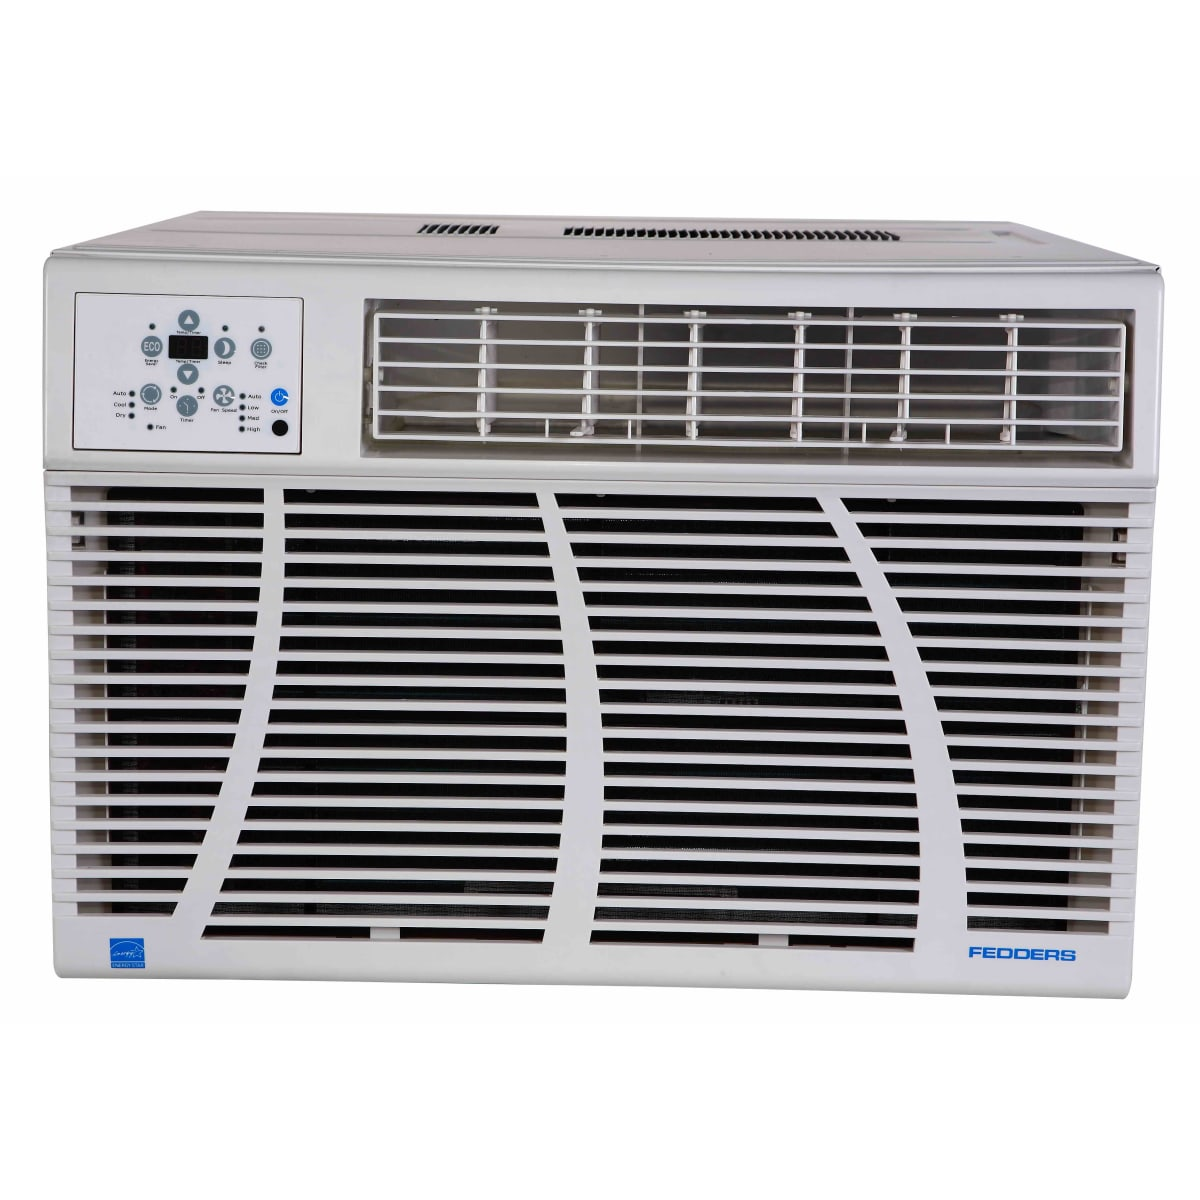 Pdf 1615 Fedders A1a07w2c Air Conditioners Owners Manual 2019